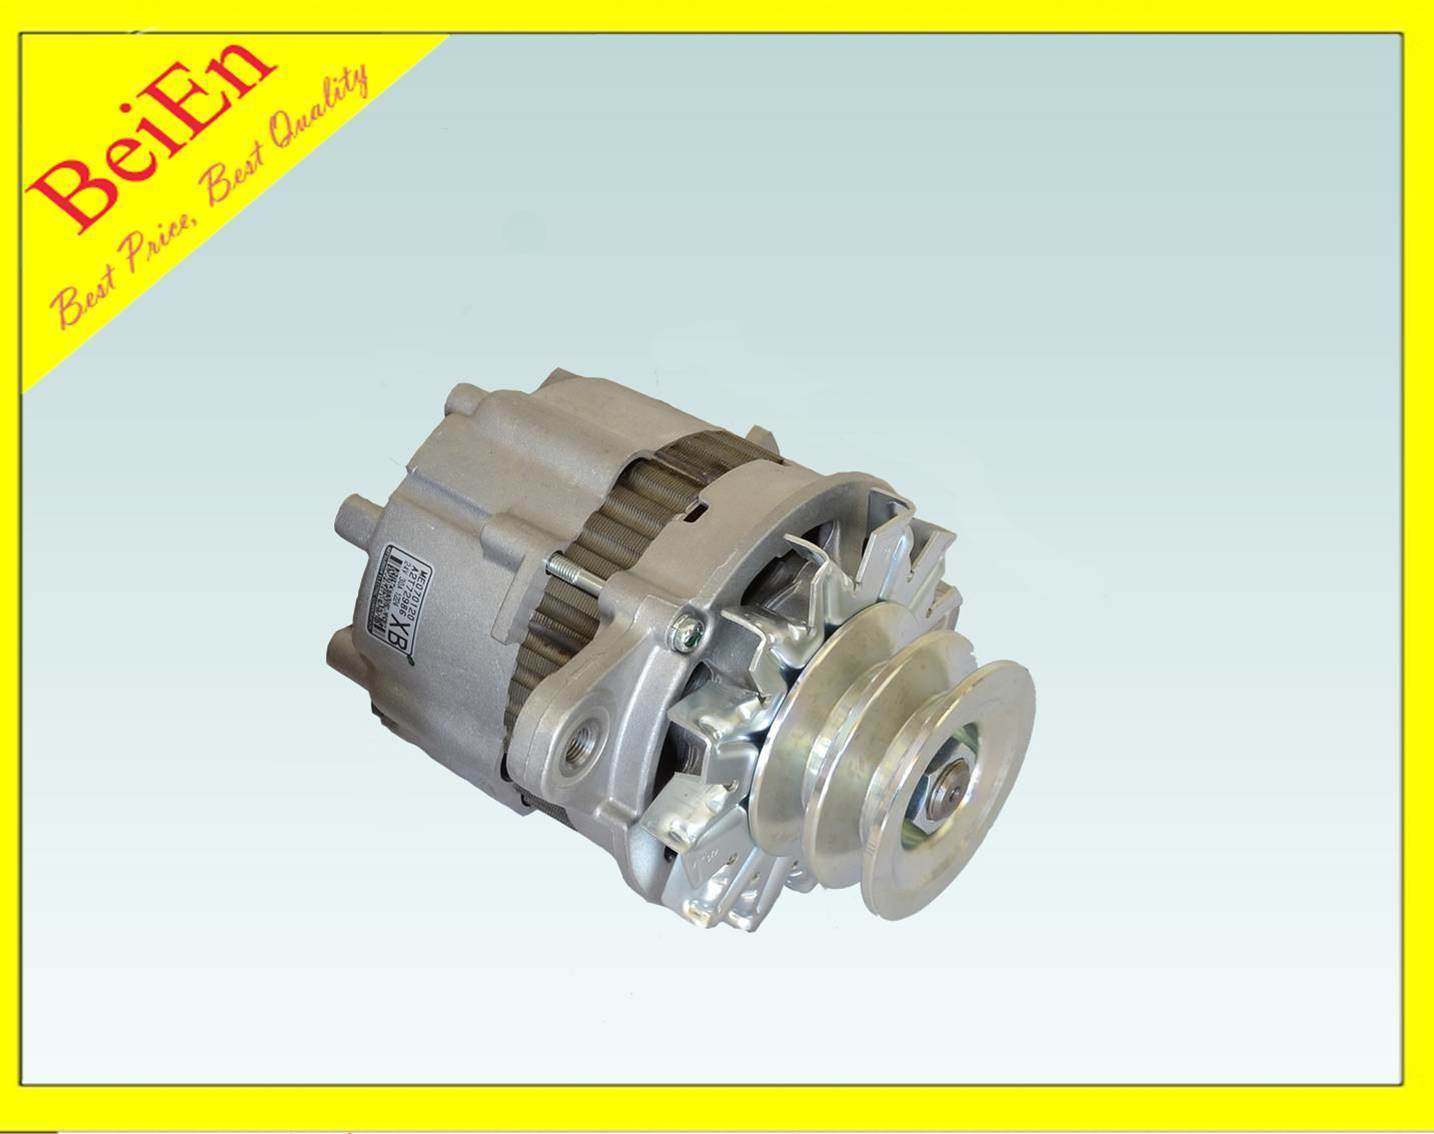 E320 Generator for Mitsubishi Excavator Engine Large in Stcok Me070120-30A